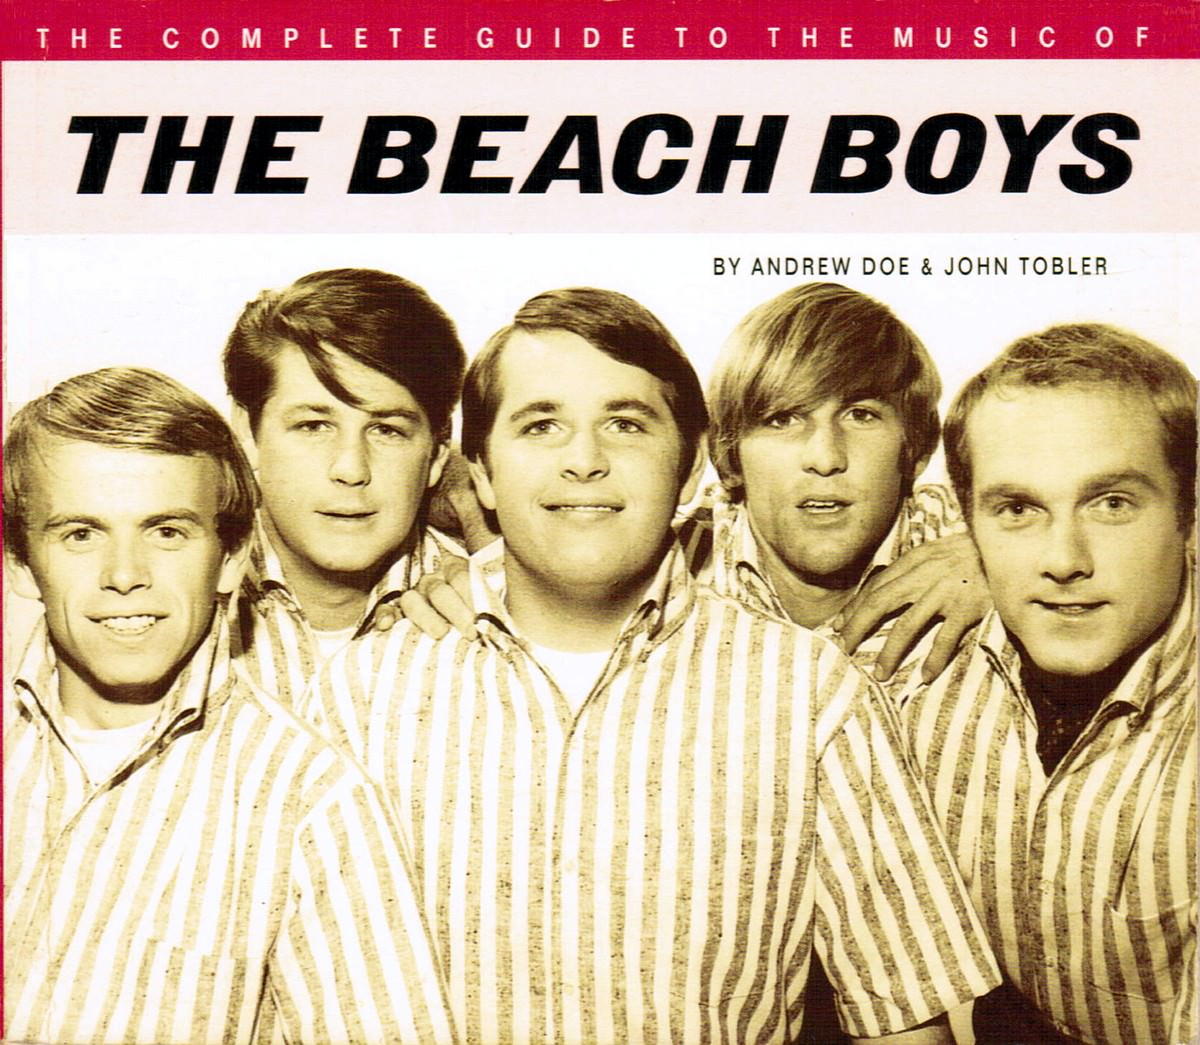 The Complete Guide To The Music Of The Beach Boys cover